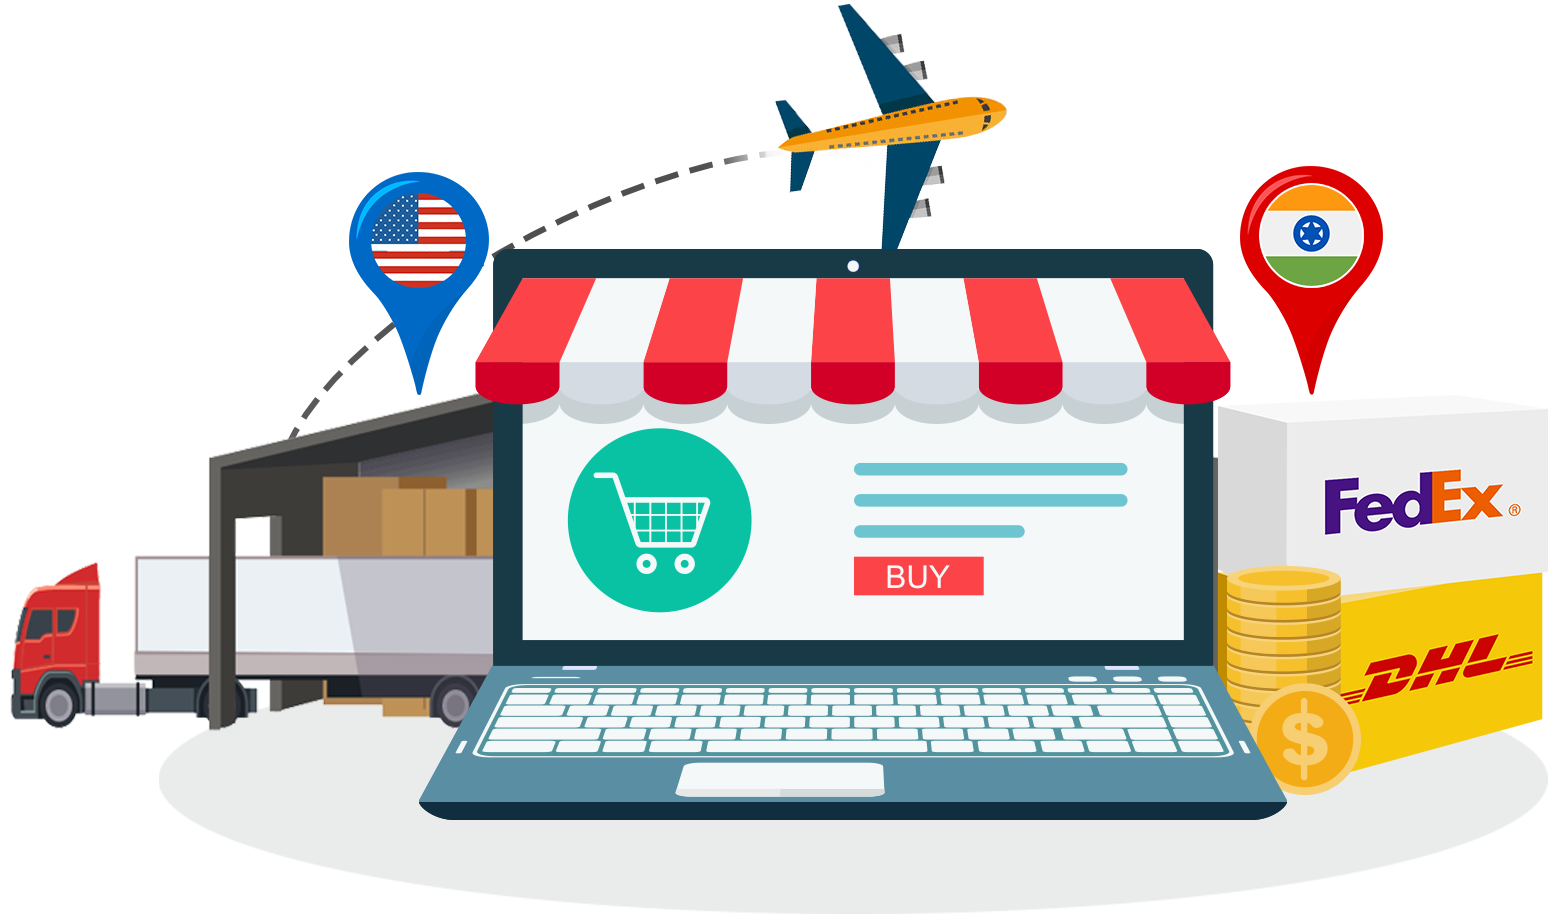 comGateway's service showing packages U.S. websites stores forwarded to DHL and FedEx couriers for shipping to India